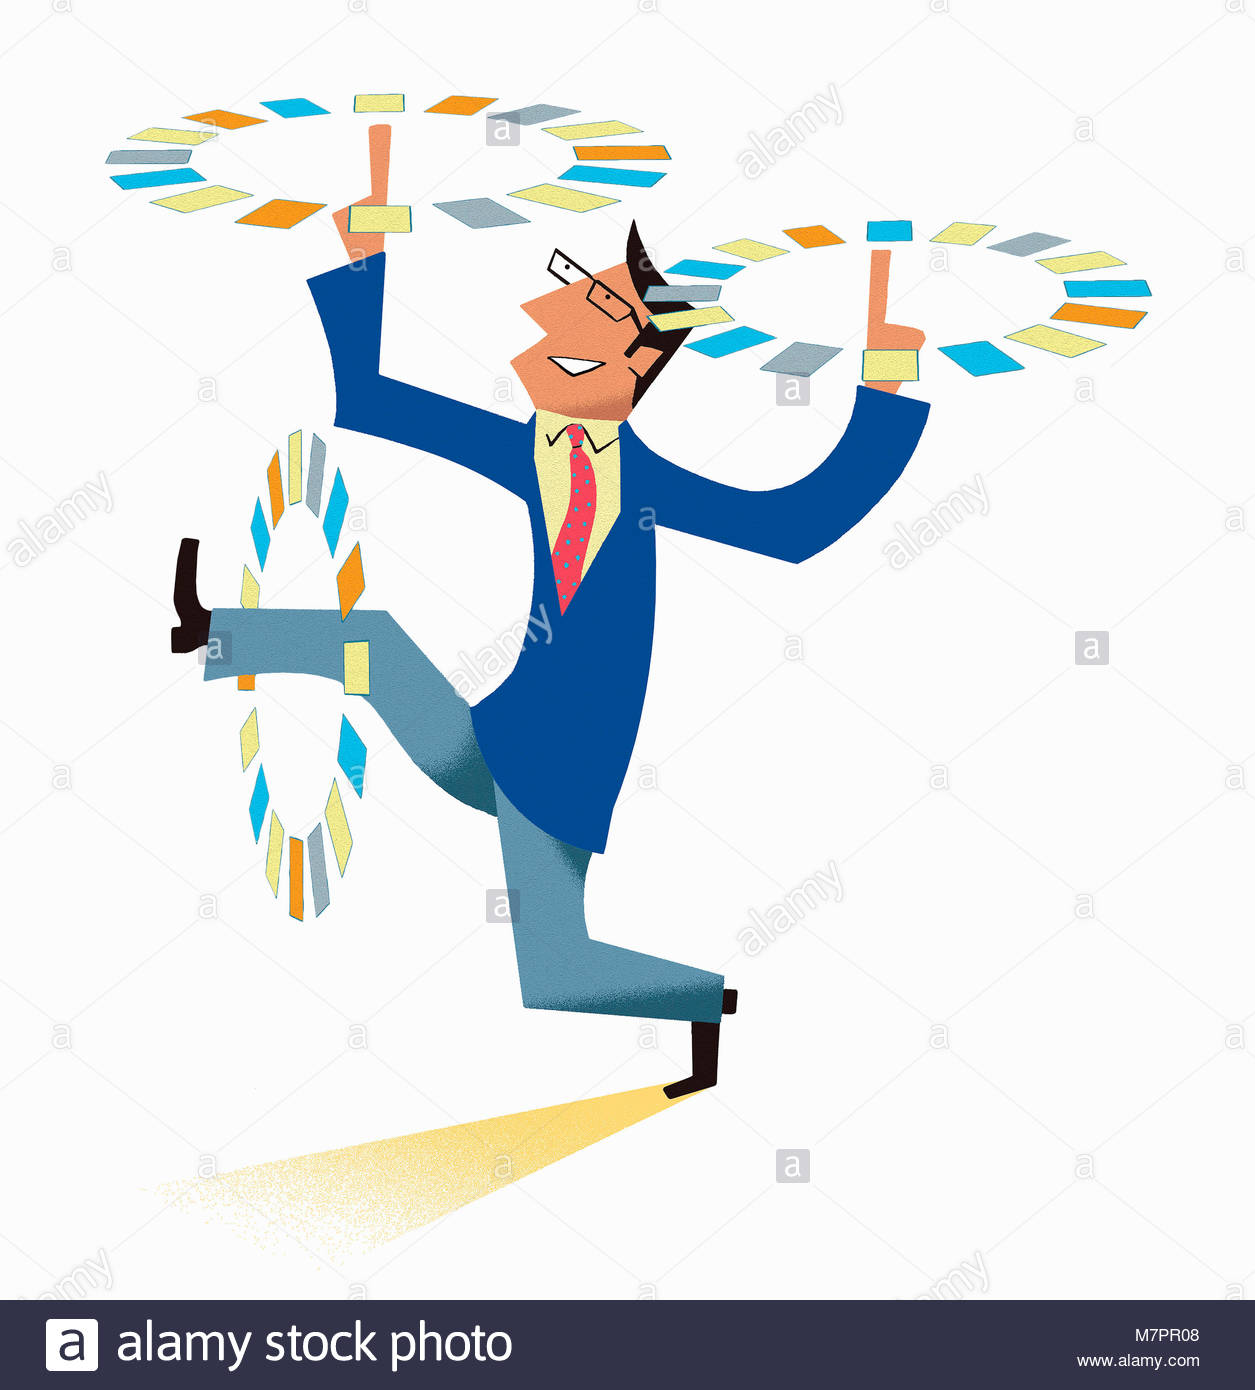 Businessman multitasking spinning papers in circles round arms and leg - Stock Image